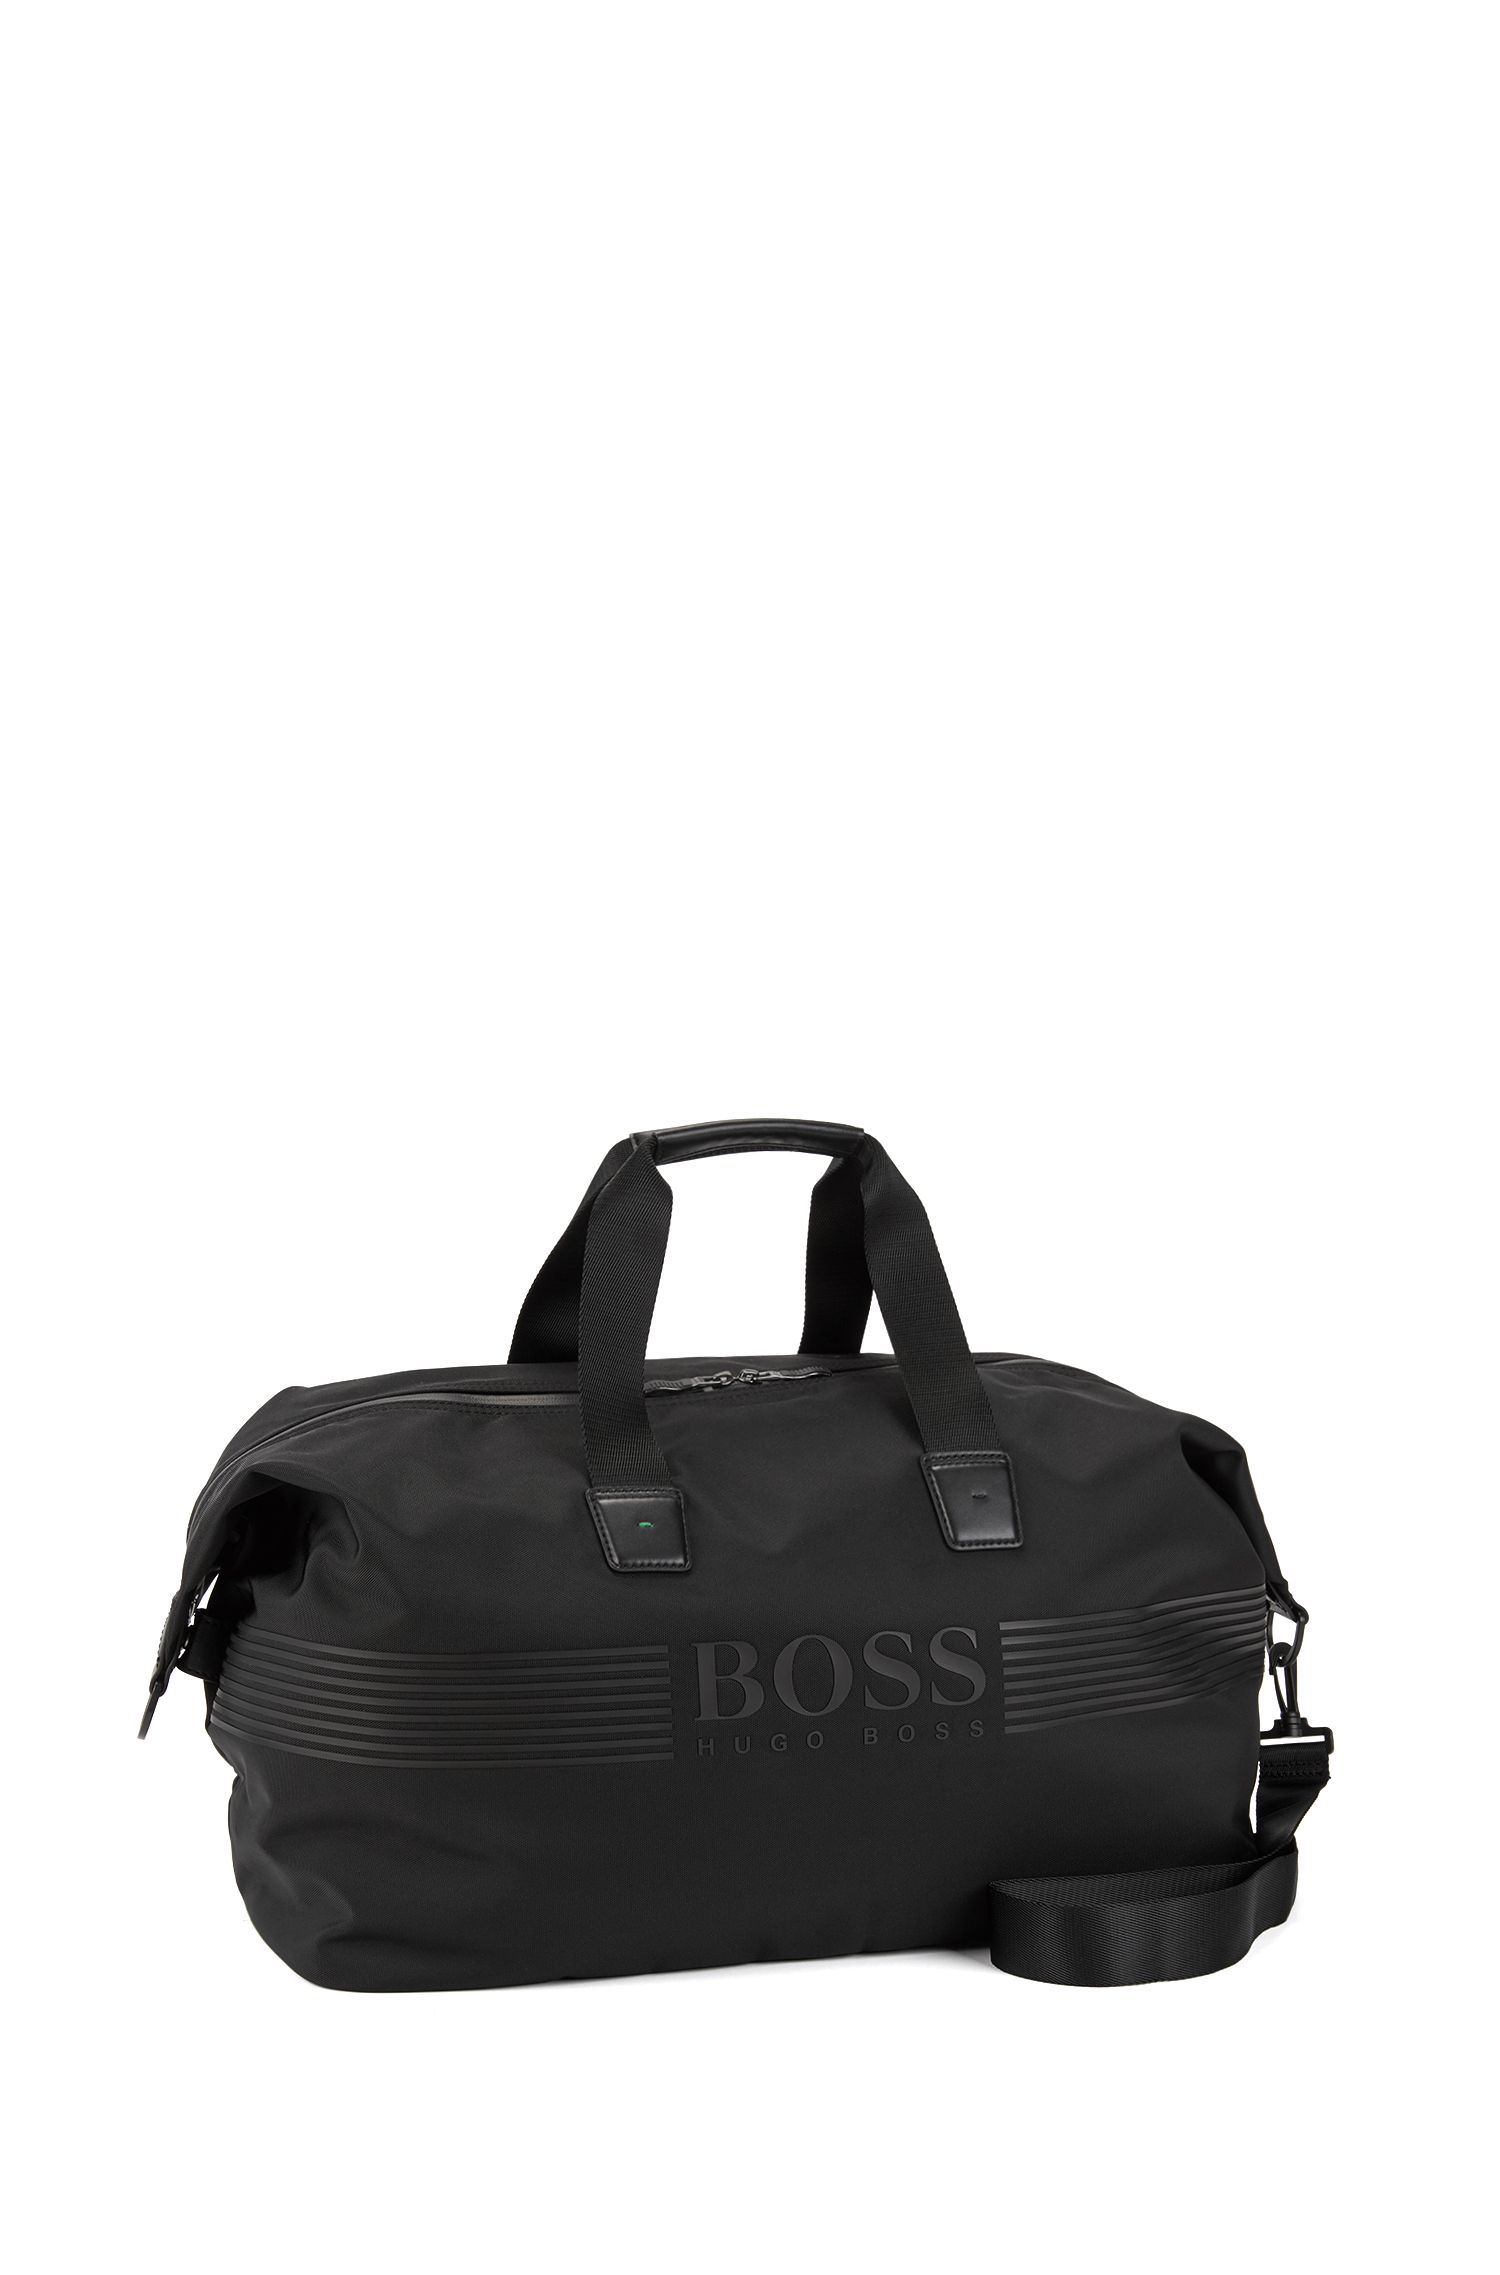 Nylon holdall with waterproof zip